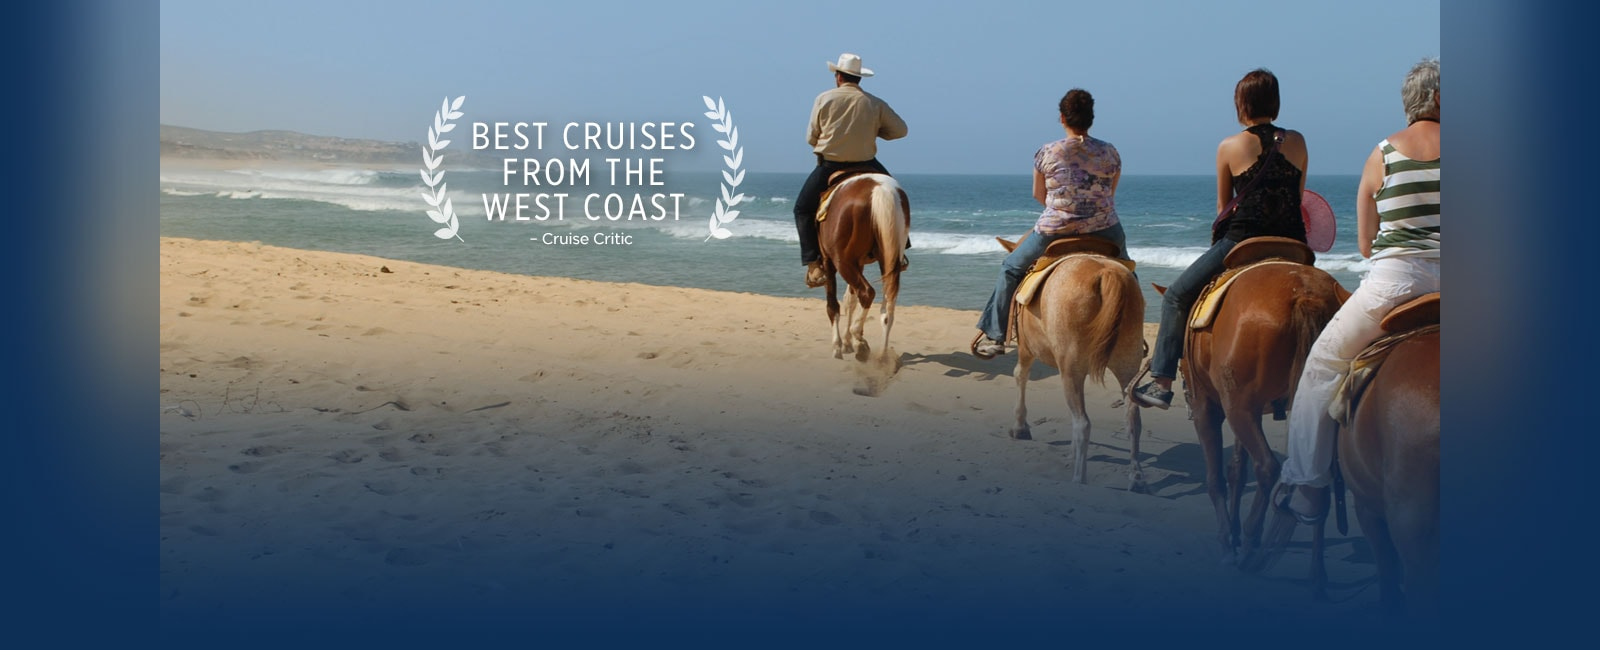 Best Cruises from the West Coast